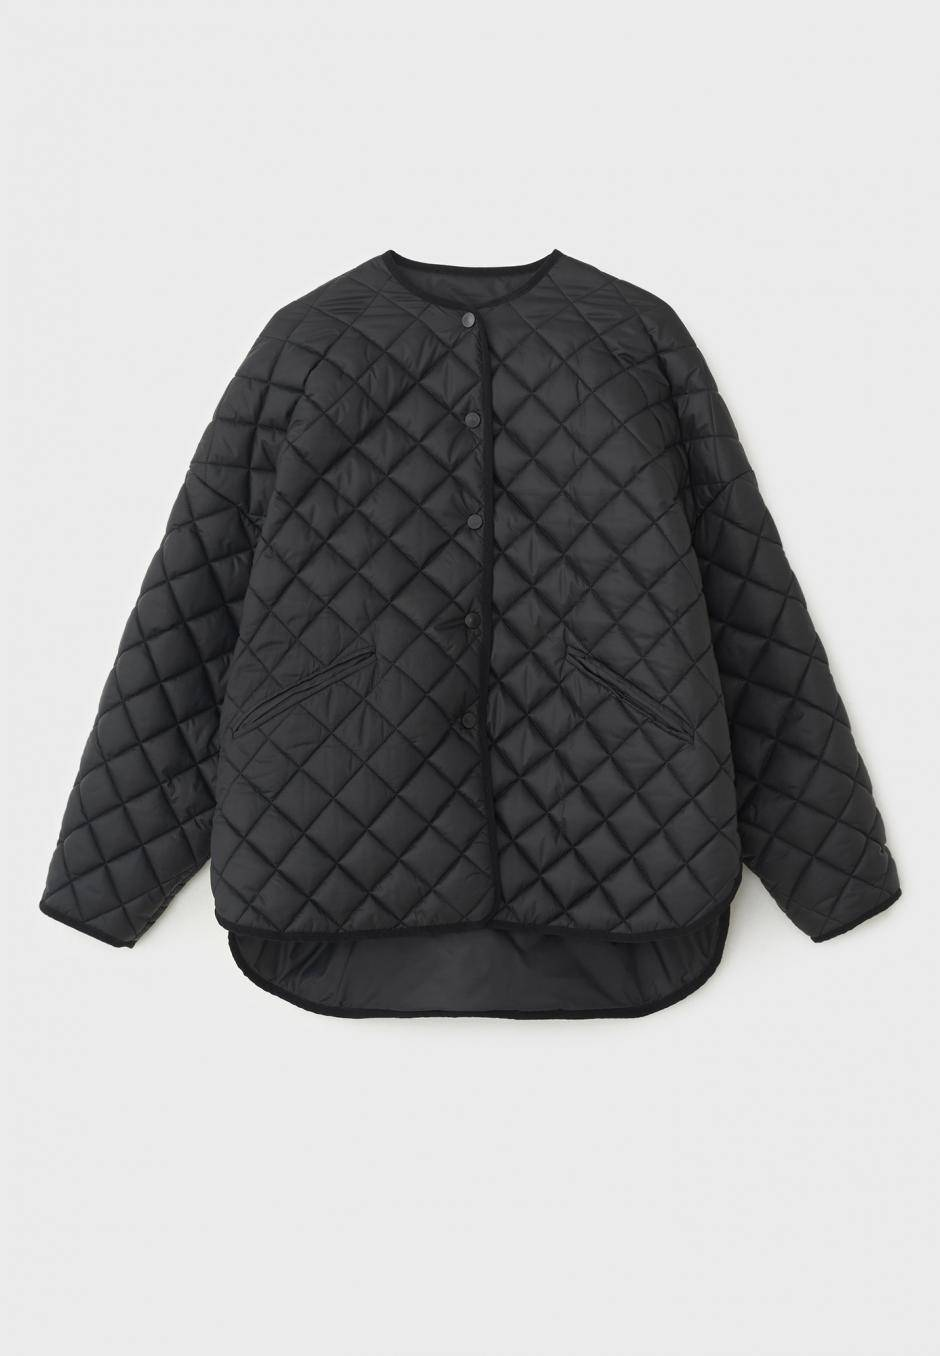 Totême Dublin quilted jacket